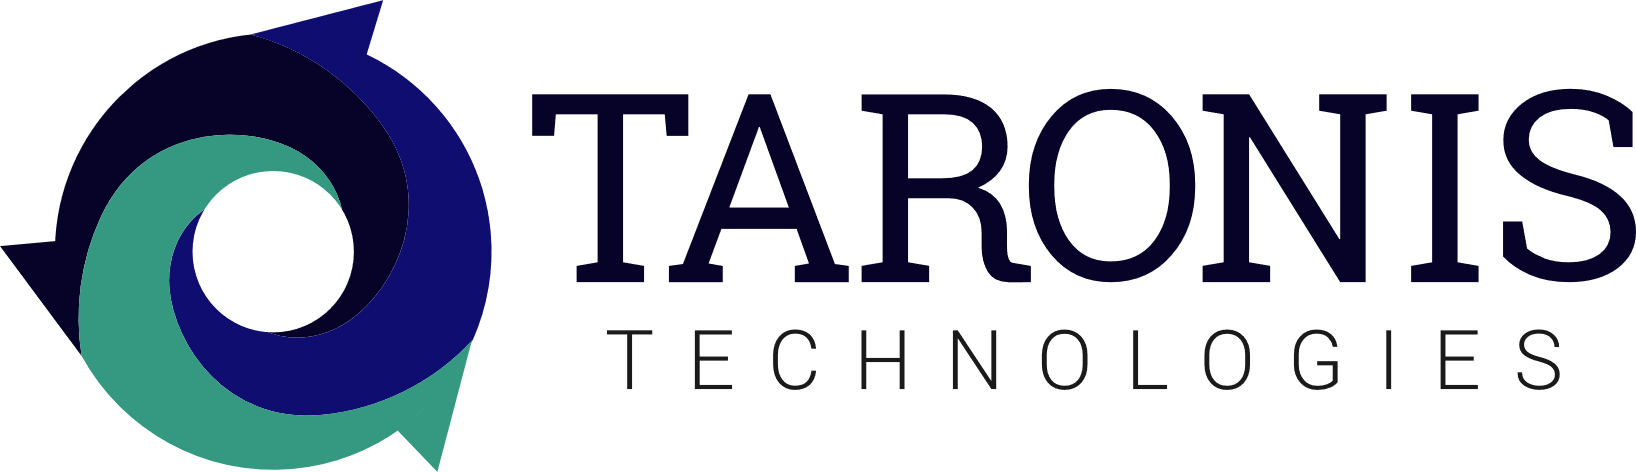 Taronis Technologies